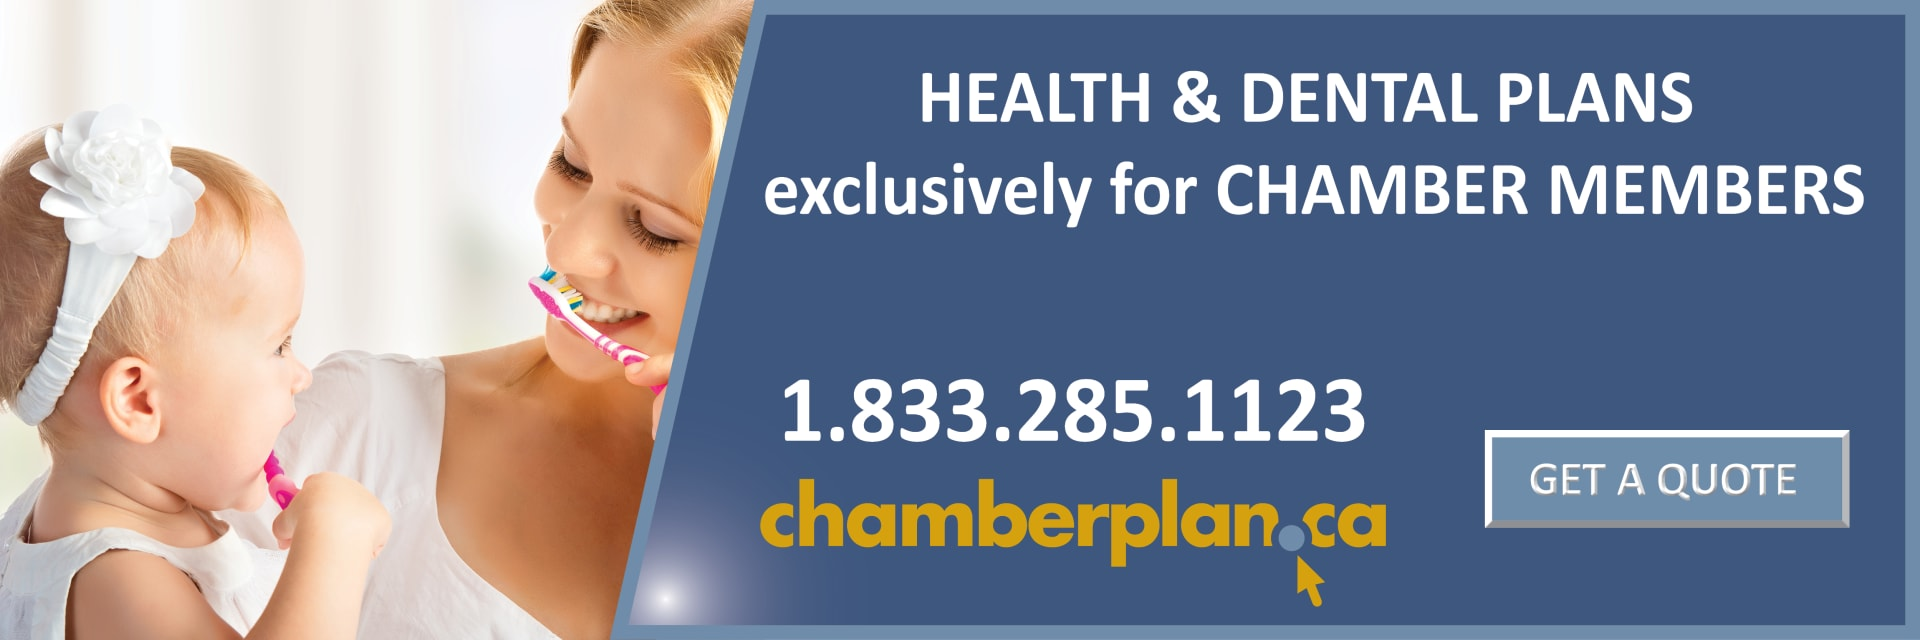 ChamberPlan-Banner-1200px-by-400px-w1920.jpg